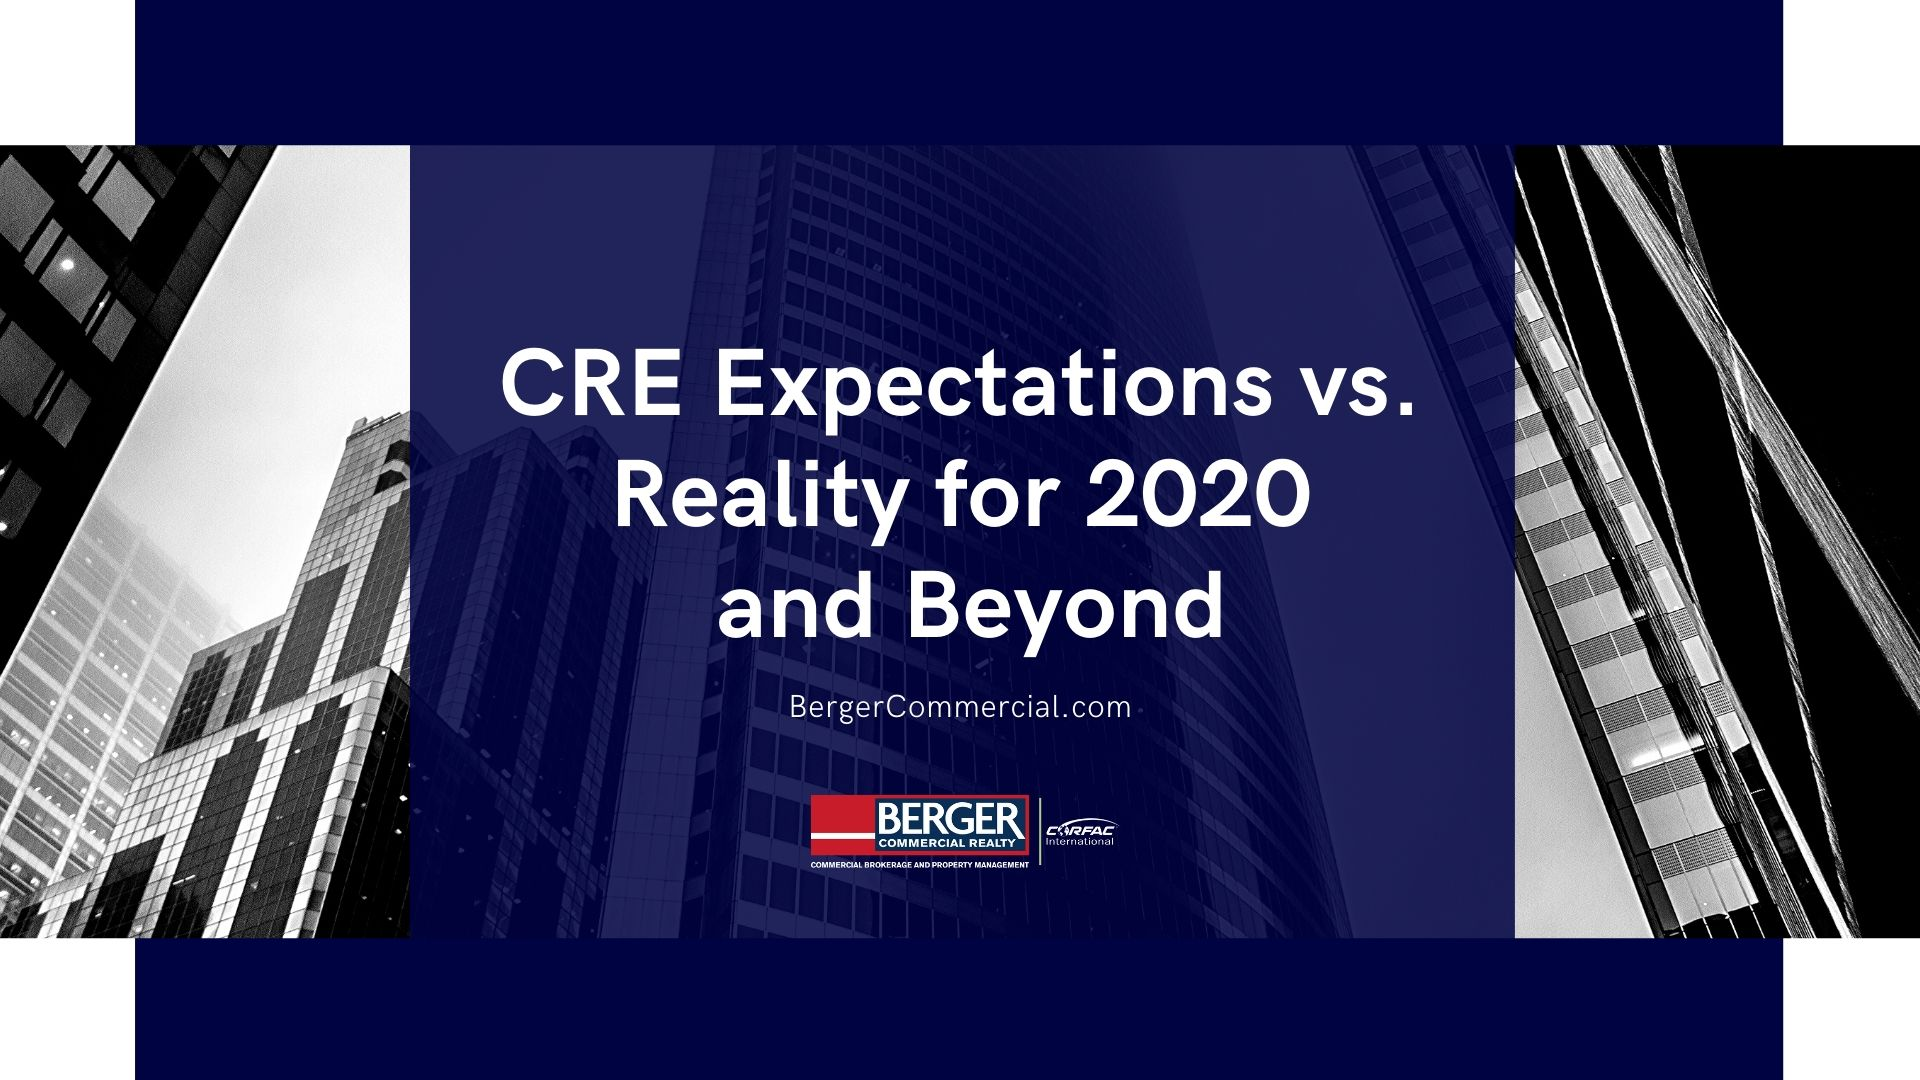 CRE Expectations Vs. Reality For 2020 And Beyond